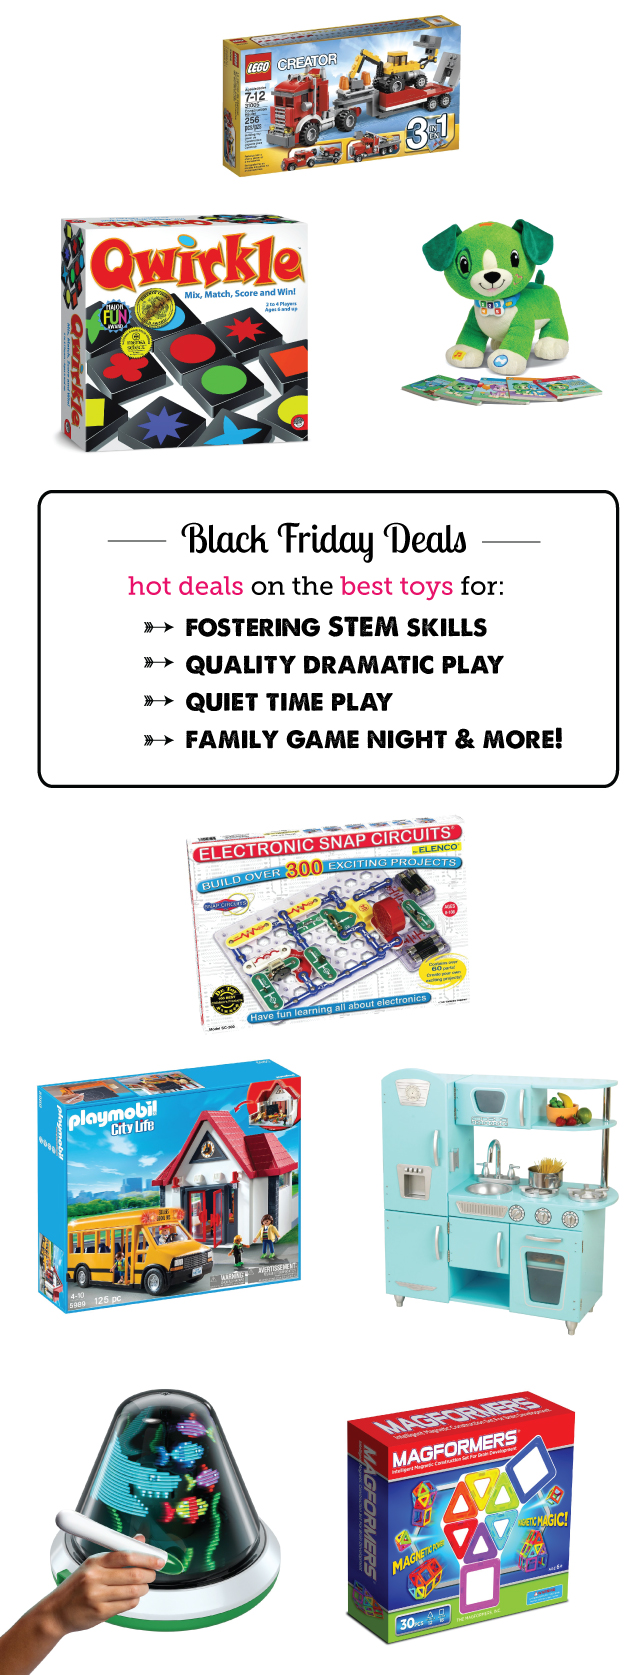 The best Black Friday deals from the 250+ toys picked for MPMK's 2013 Ultimate Toy Gift Guide - excellent toy descriptions and age rages here. I esp. love the STEM and quiet time toy picks!